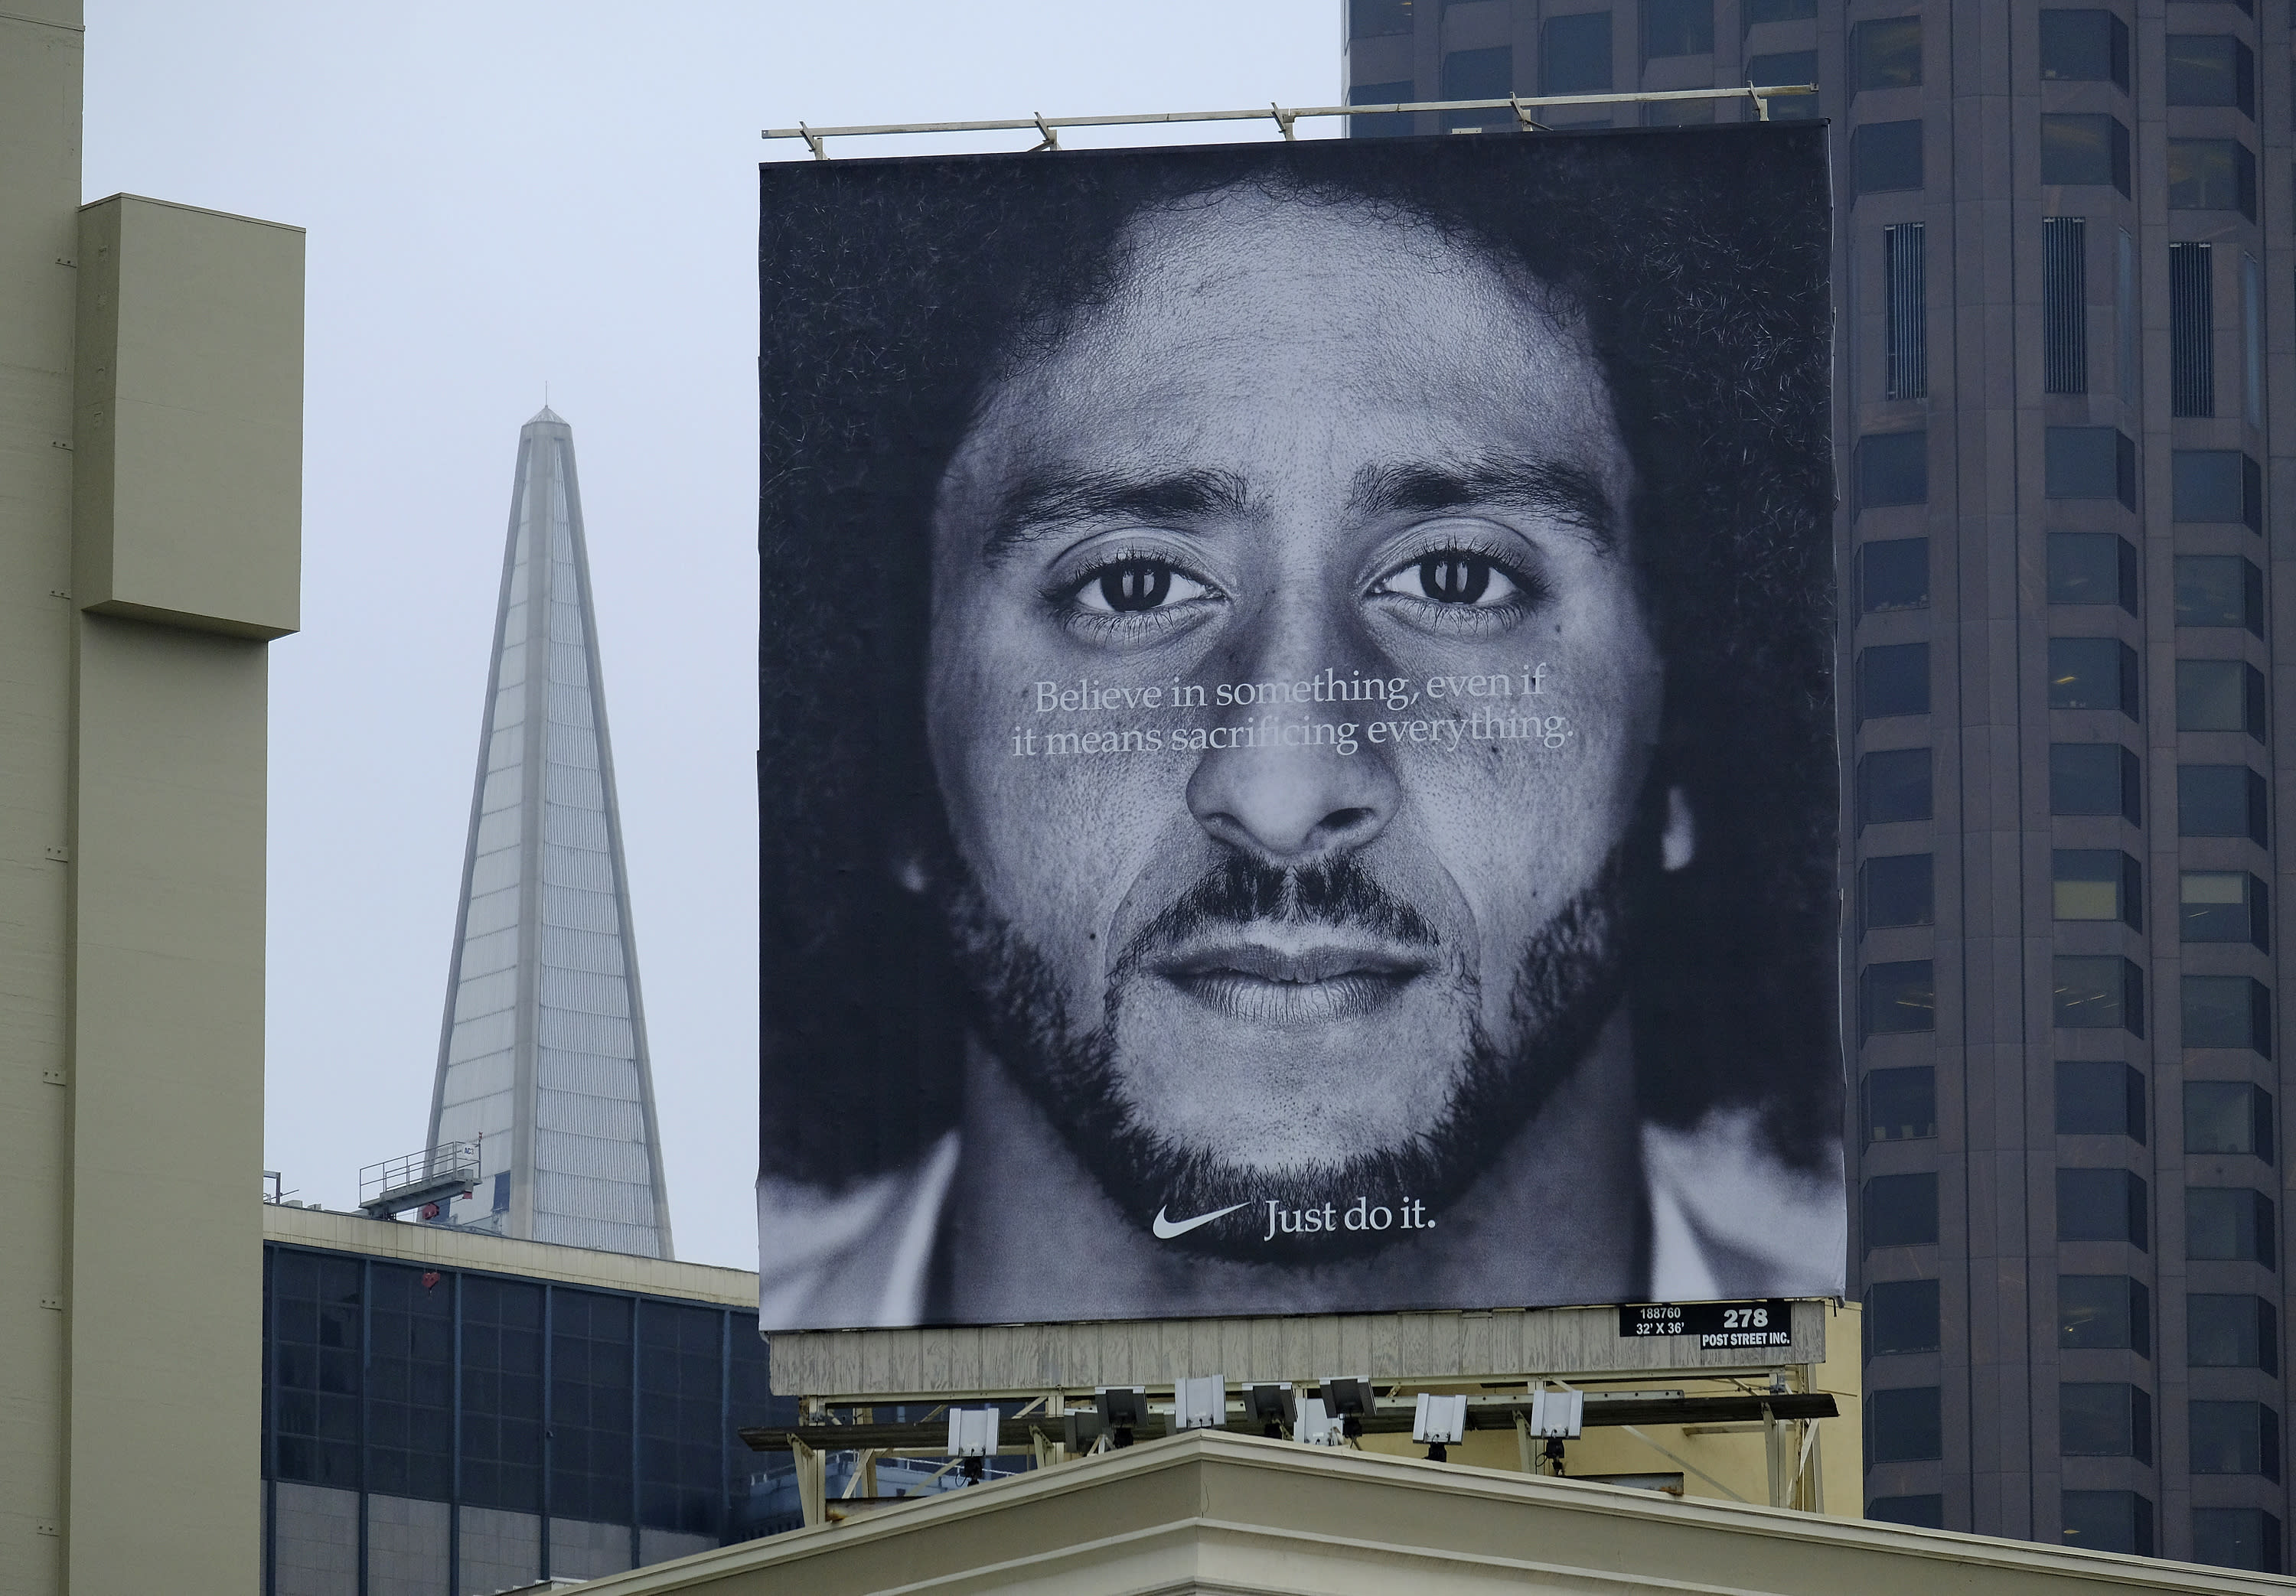 Colin Kaepernick's Nike commercial popular with consumers